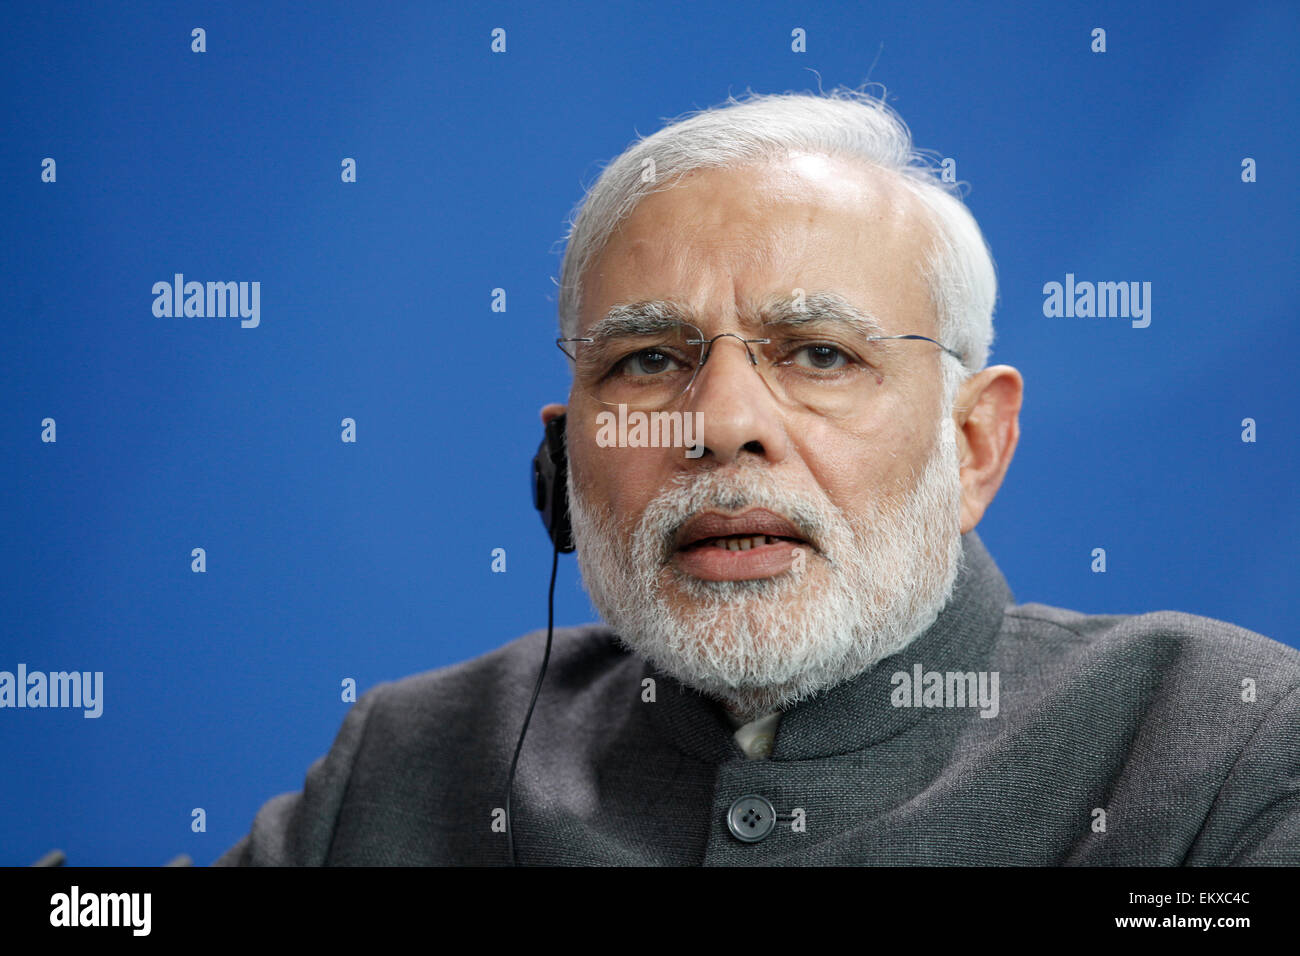 Berlin, Germany. 14th Apr, 2015. Indian prime minister Narendra Modi, and the German Chancellor Angela Merkel during - Stock Image